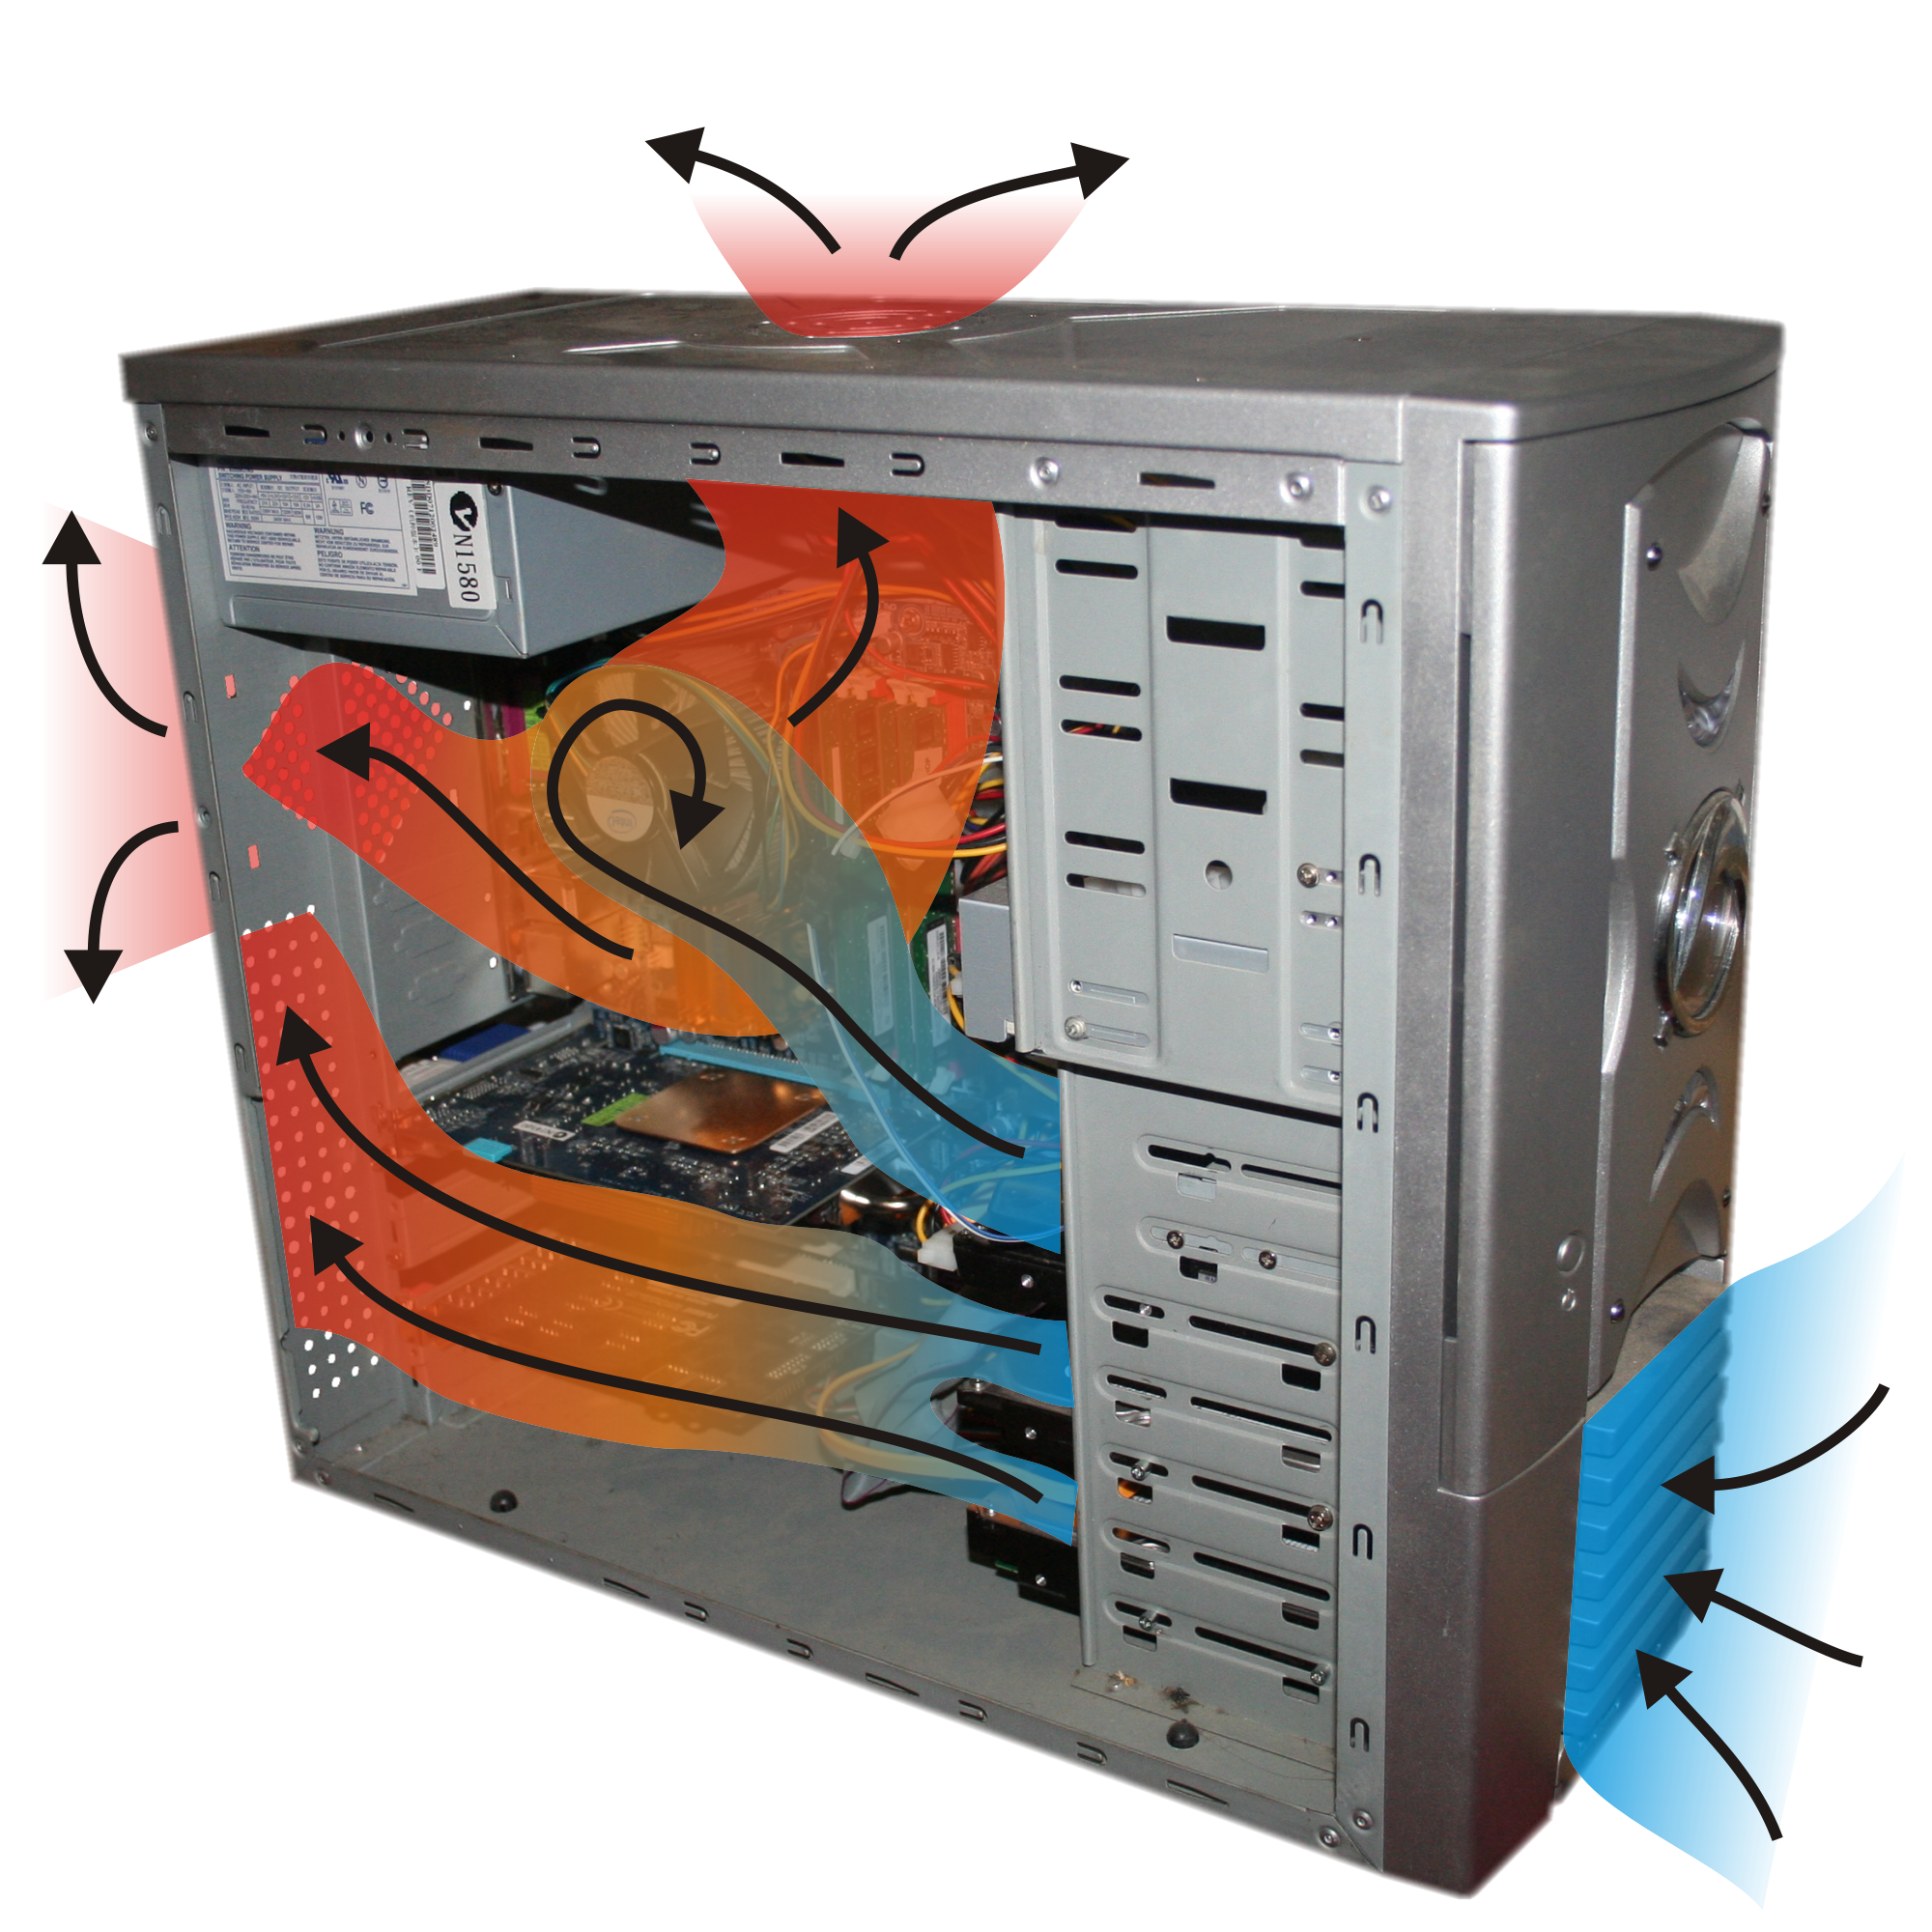 File:Computer case coolingair flow.png - Wikimedia Commons